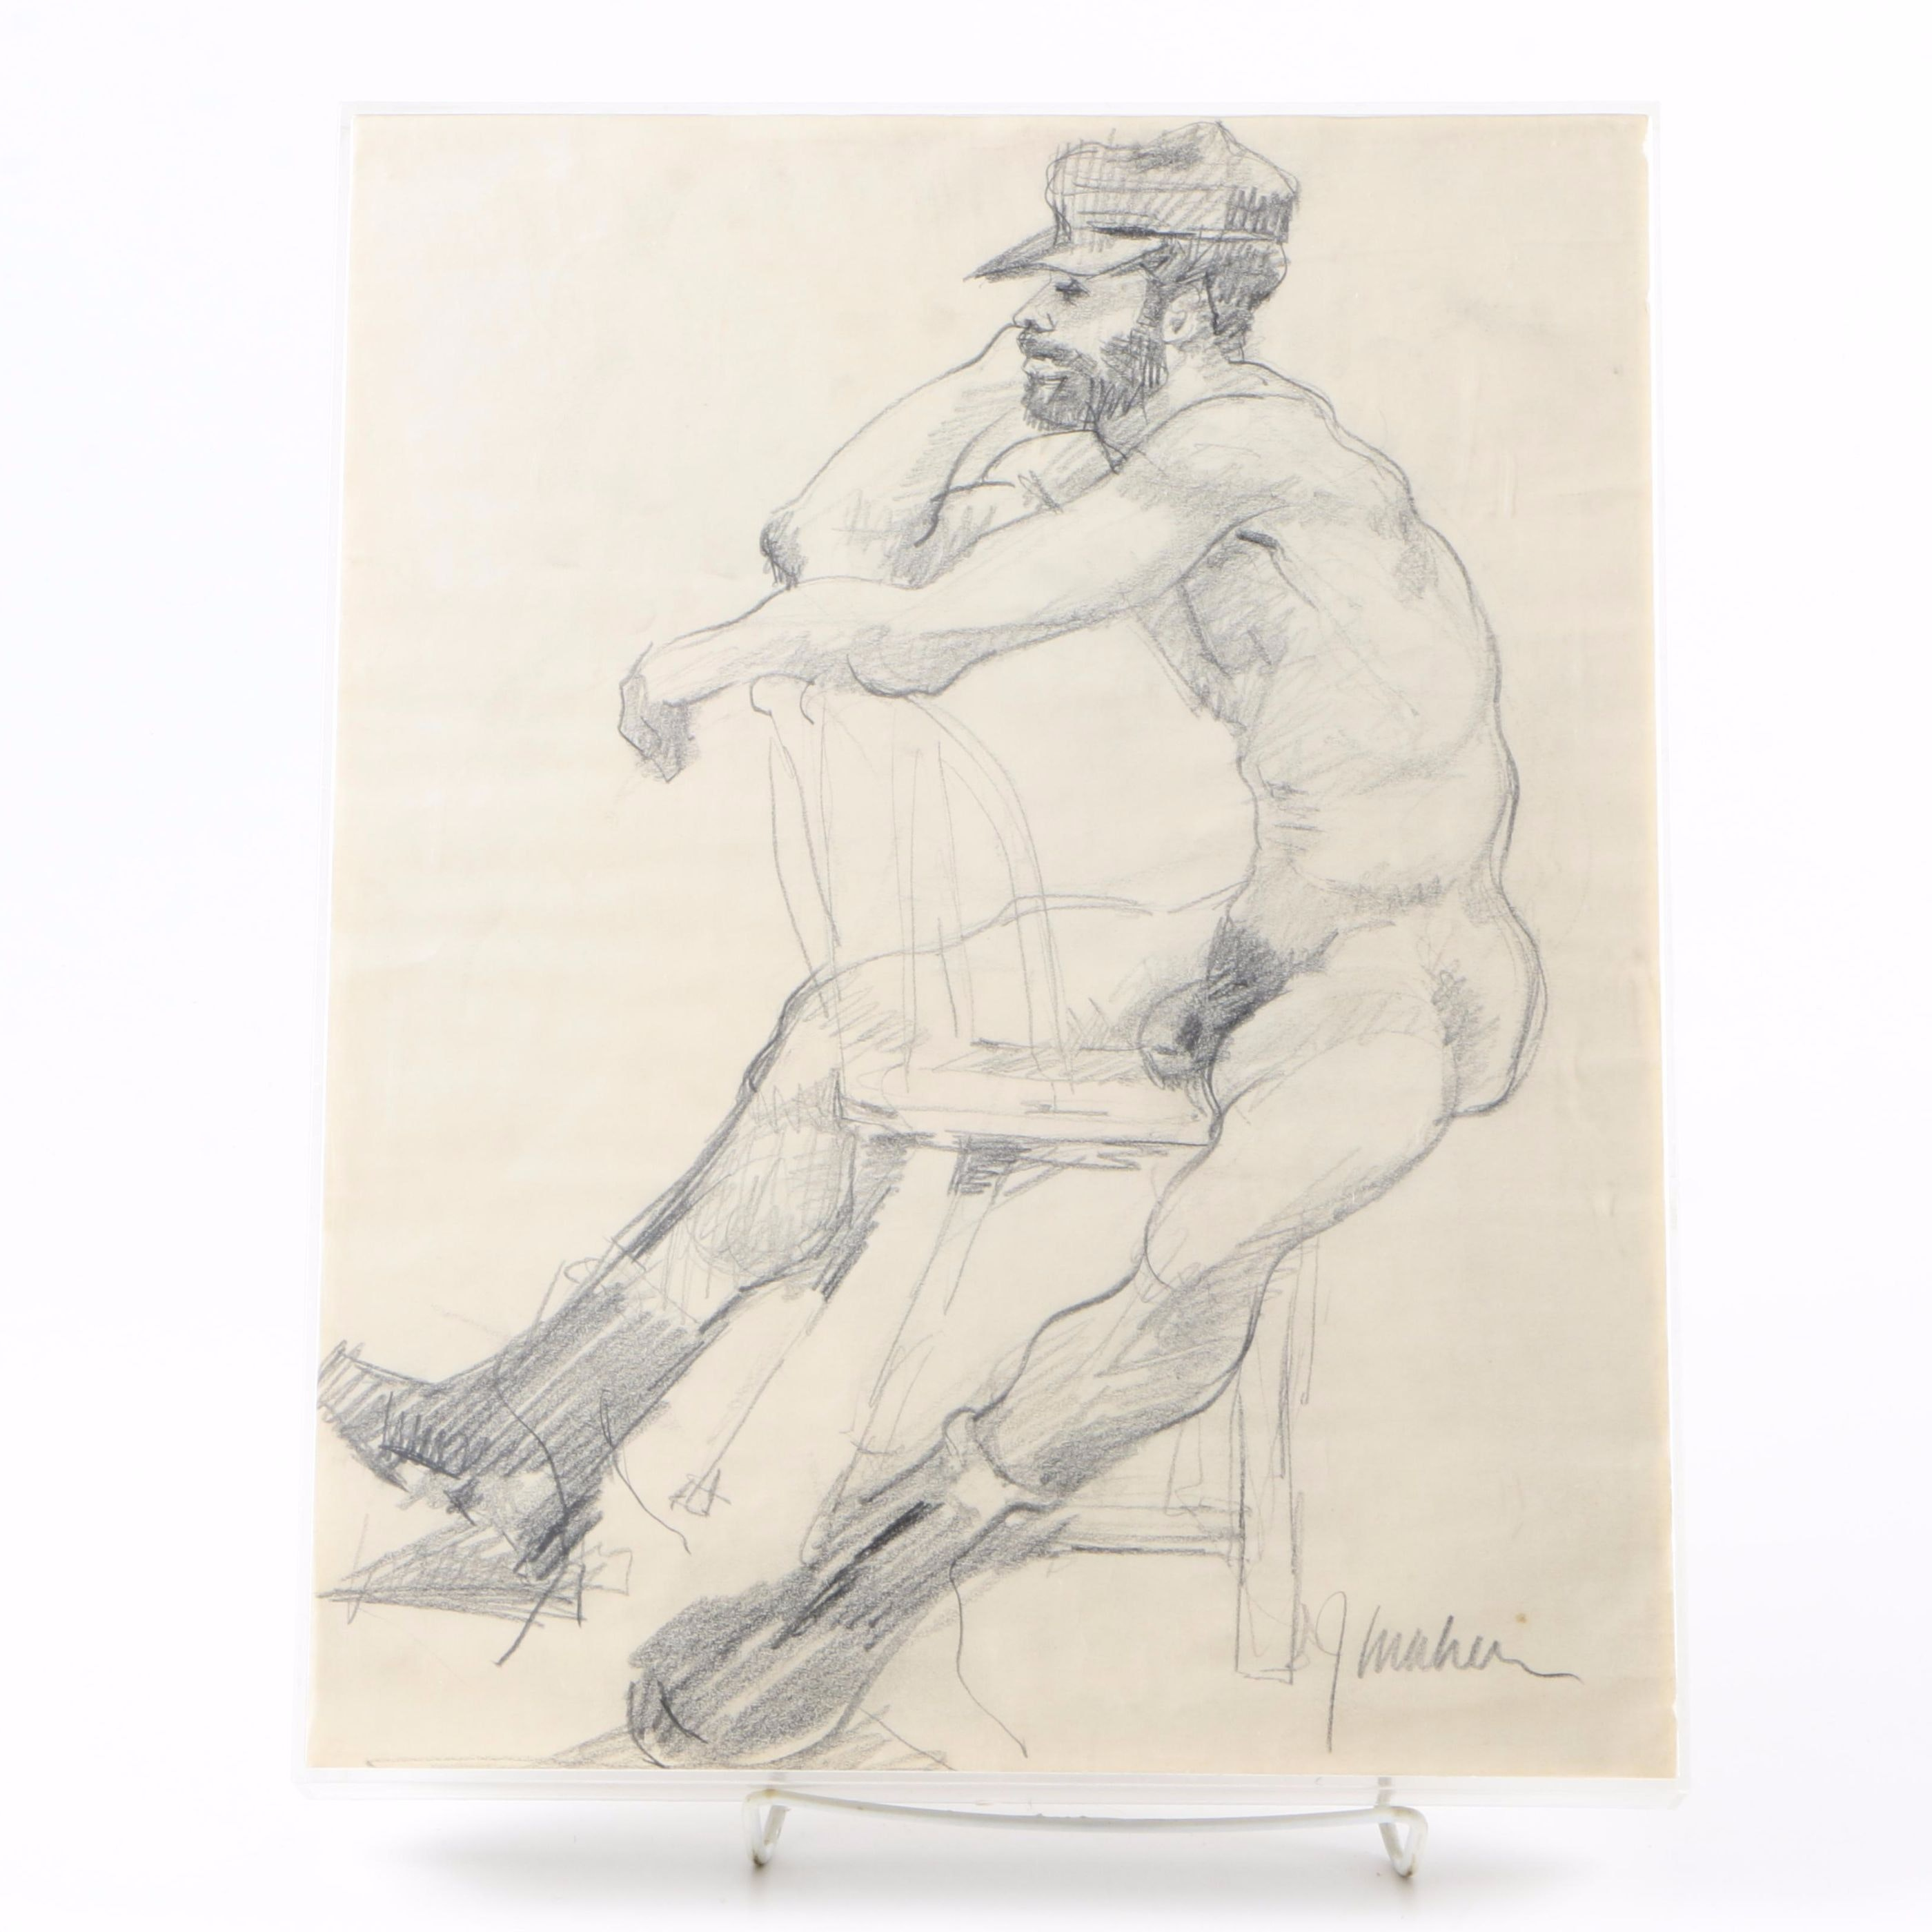 James Maher Figure Drawing of a Seated Nude Man